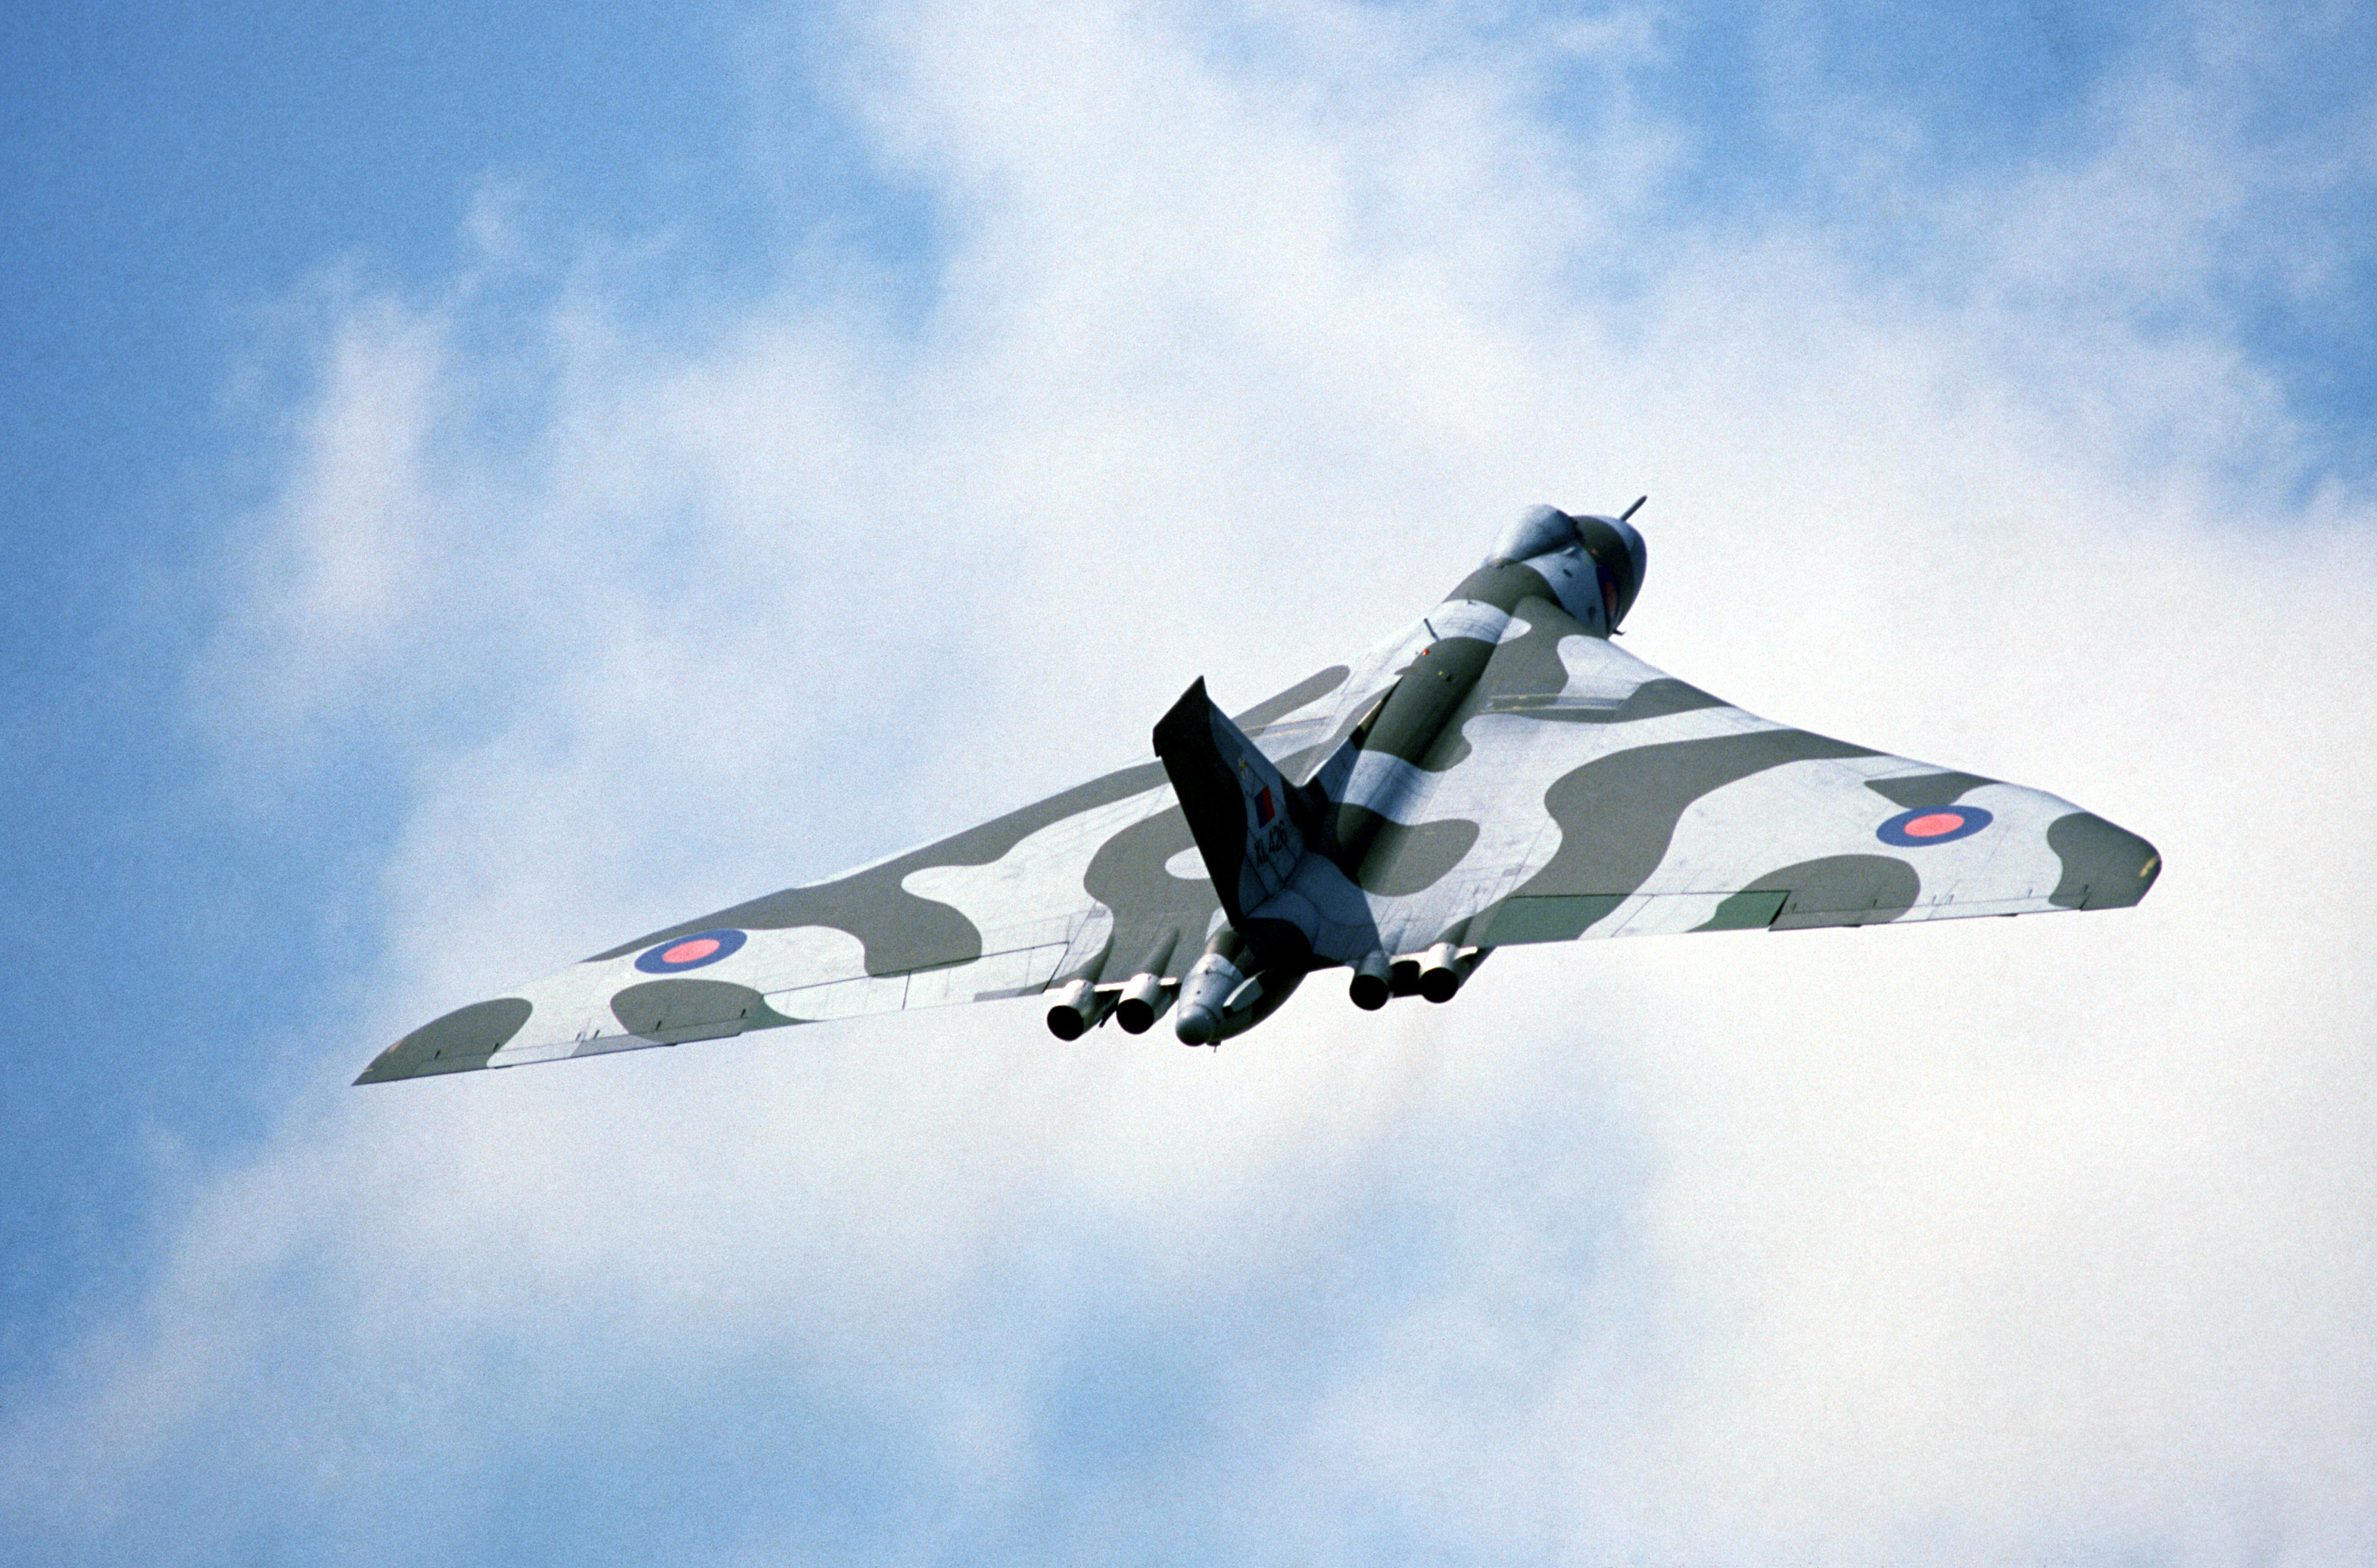 File:Avro Vulcan Bomber RAF.JPEG - Wikipedia, the free encyclopedia